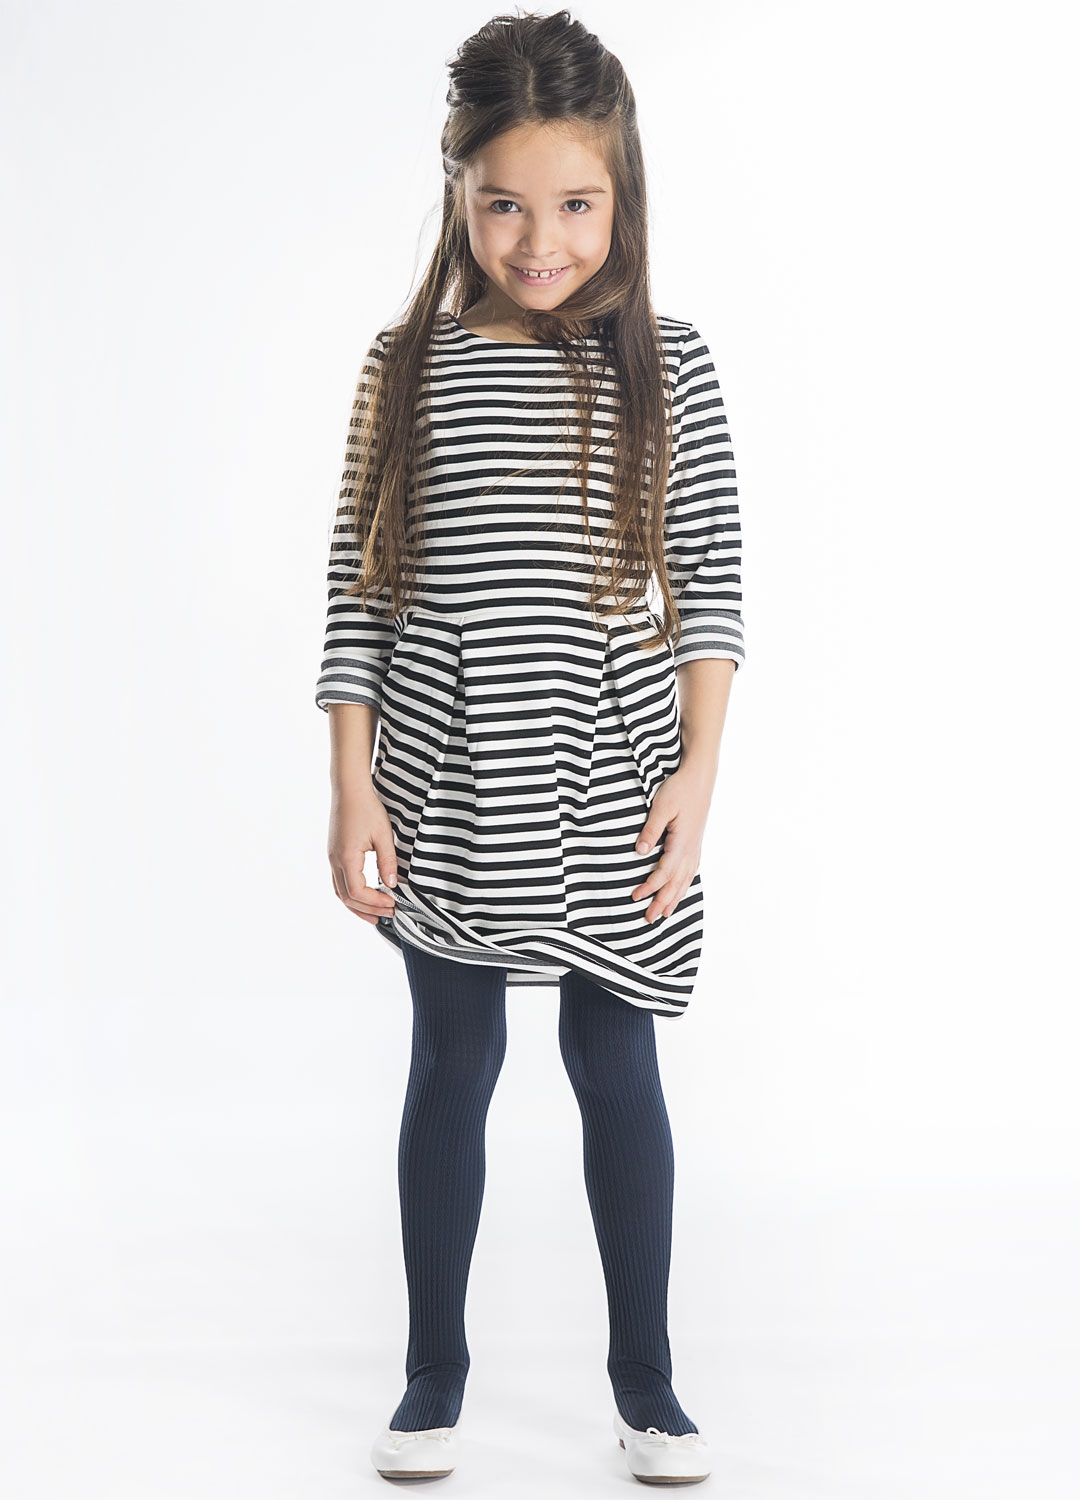 Children's Tights Testarda | Past Collection